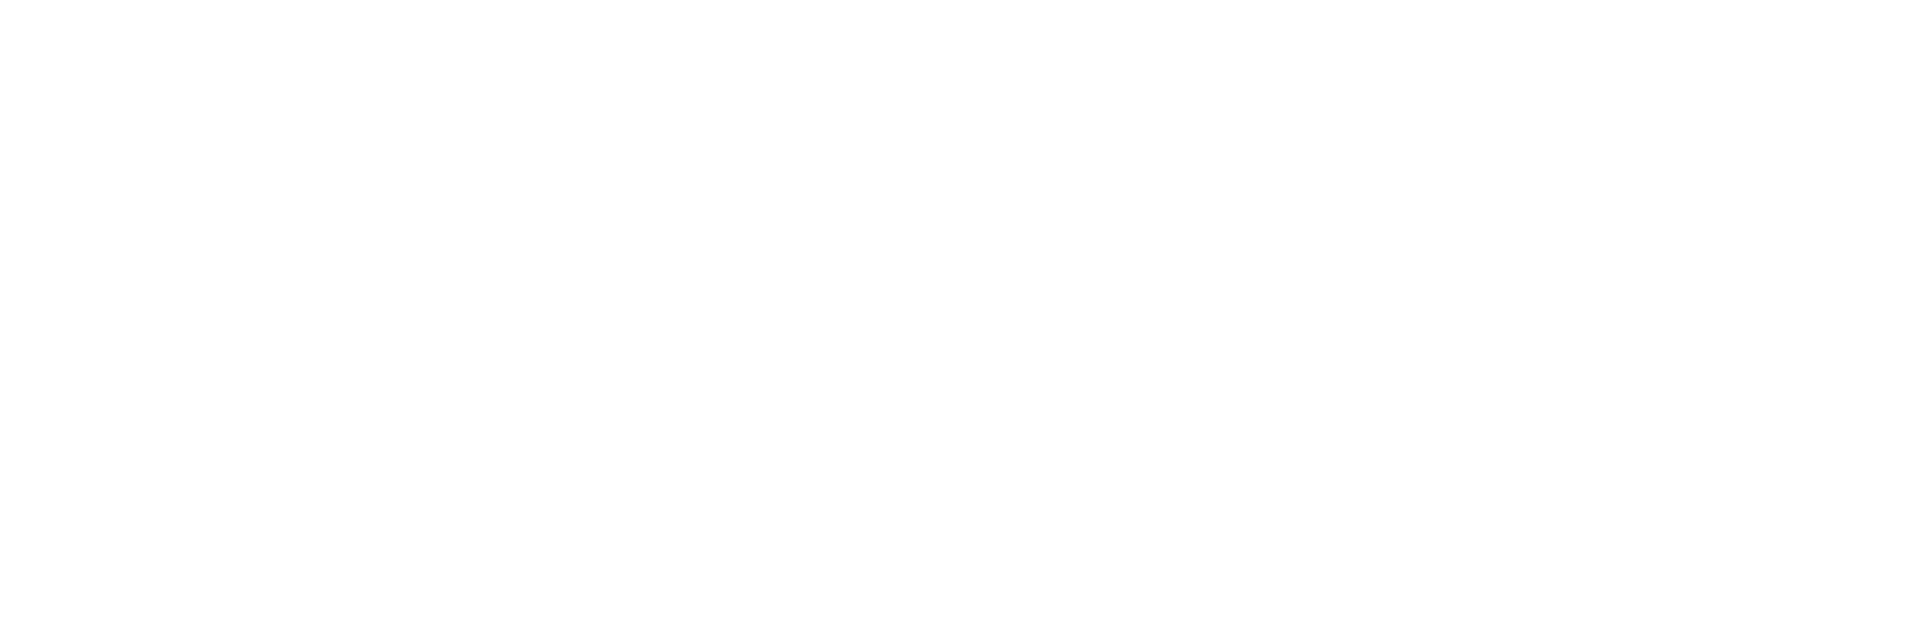 Apply Now - Banner Image